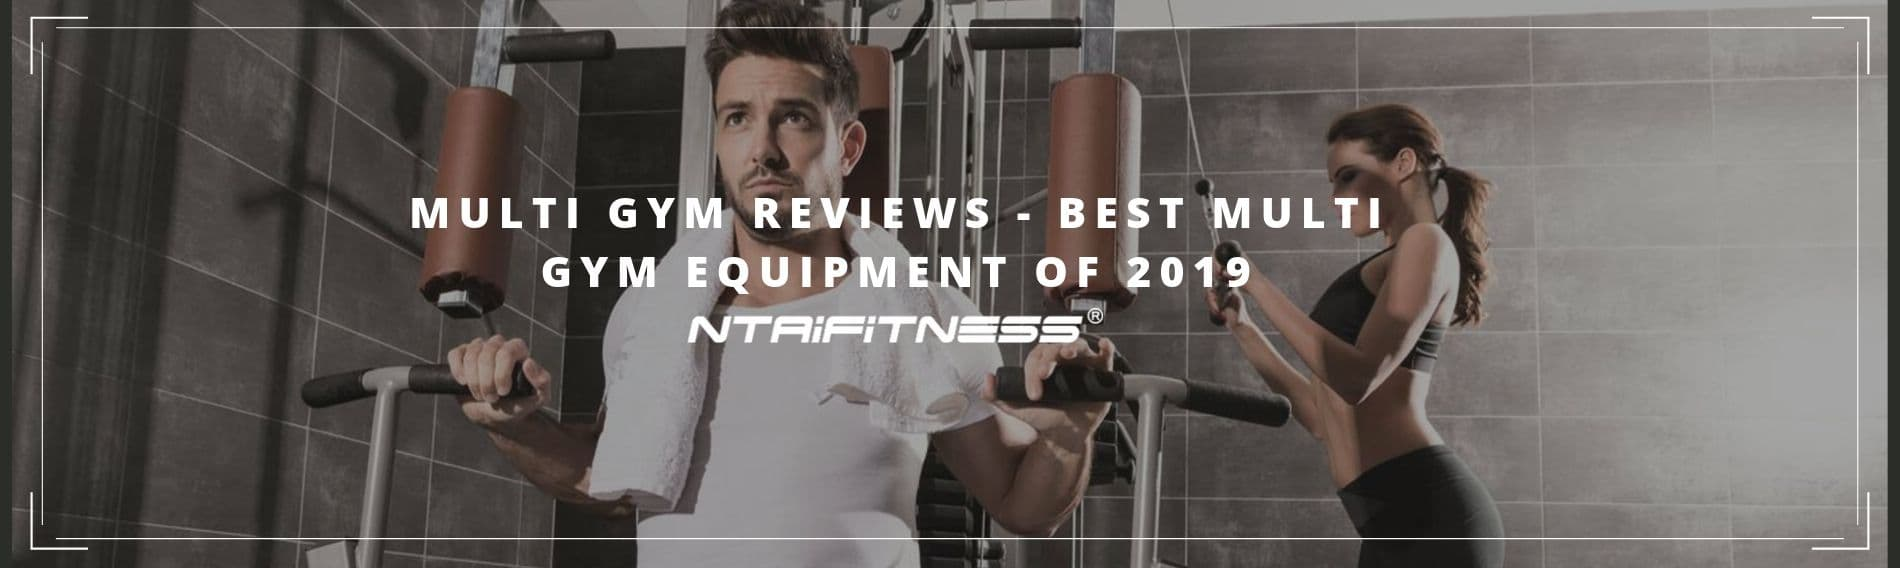 Multi Gym Reviews - Best Multi Gym Equipment of 2019